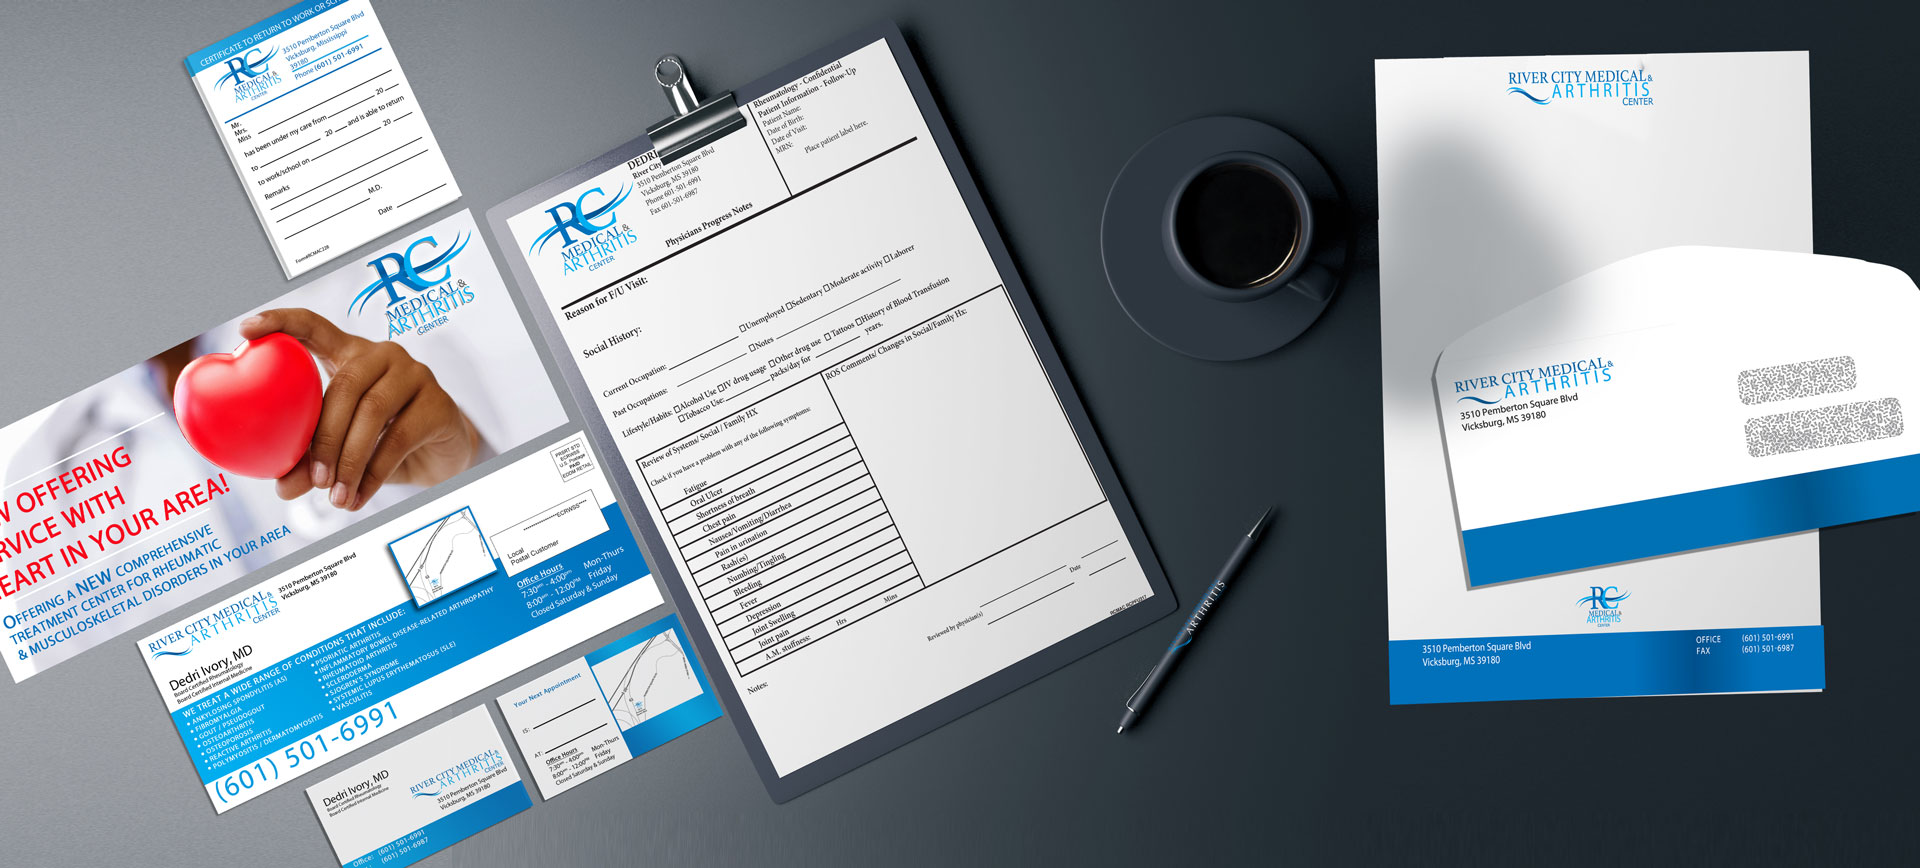 Health Care and Medical Brand Design for River City Medical by Cordavii Brand Consulting